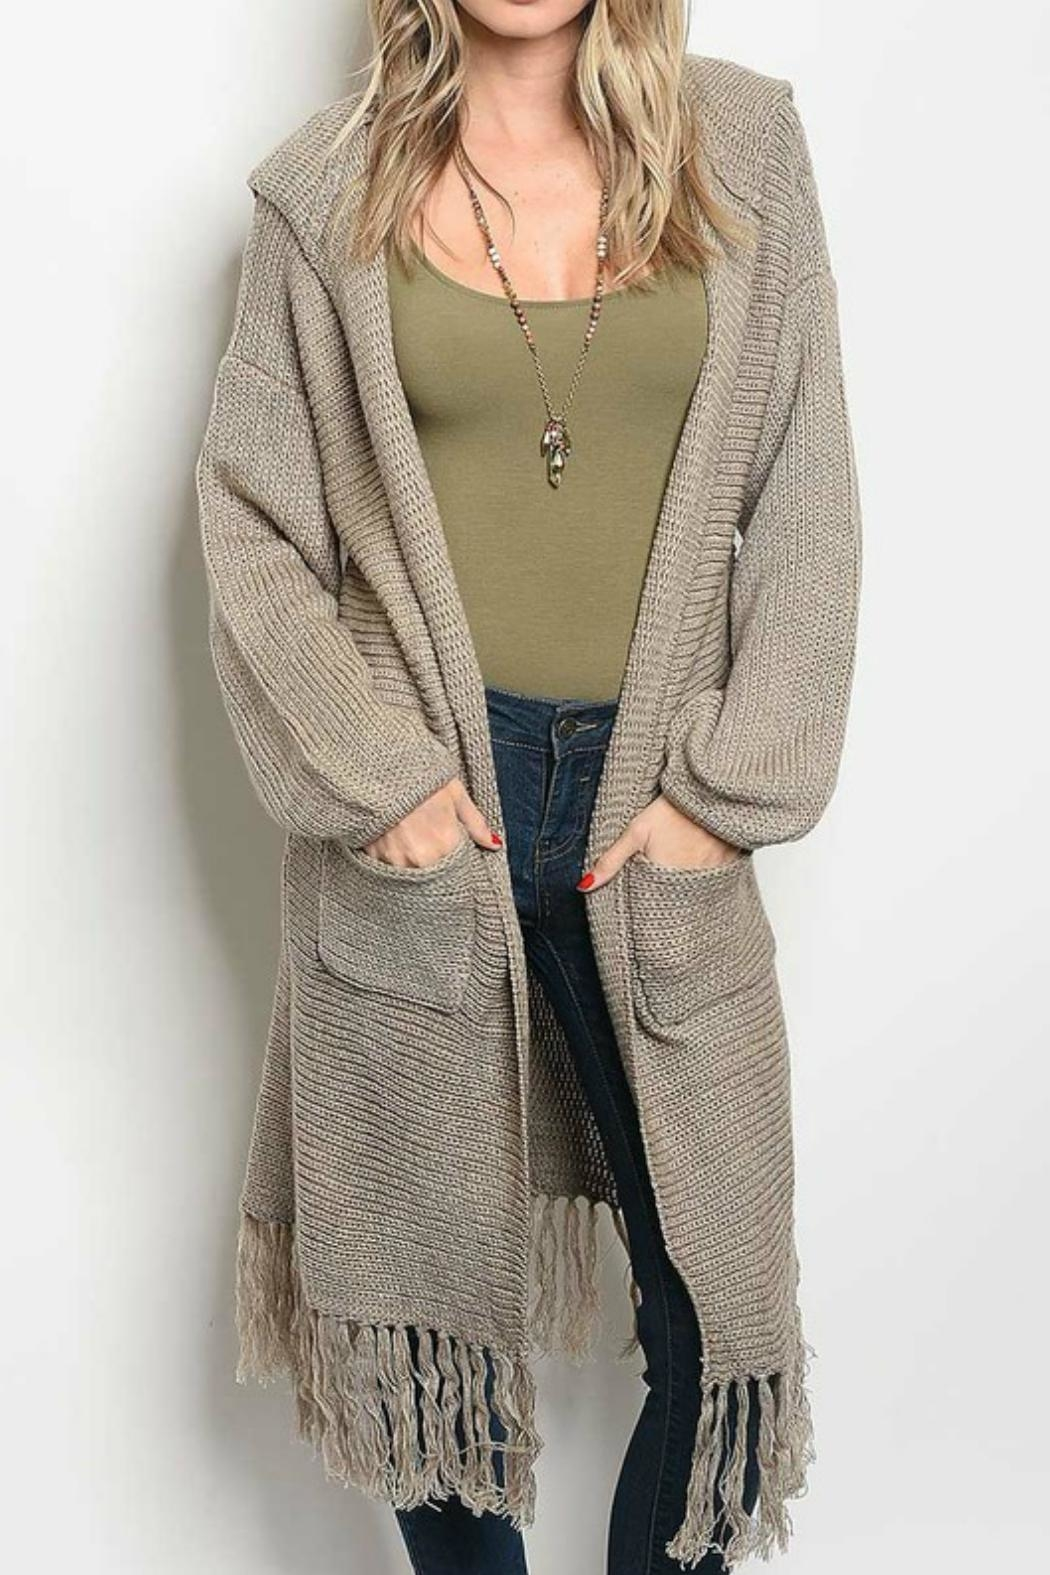 LoveRiche Hooded Fringe Cardigan - Main Image